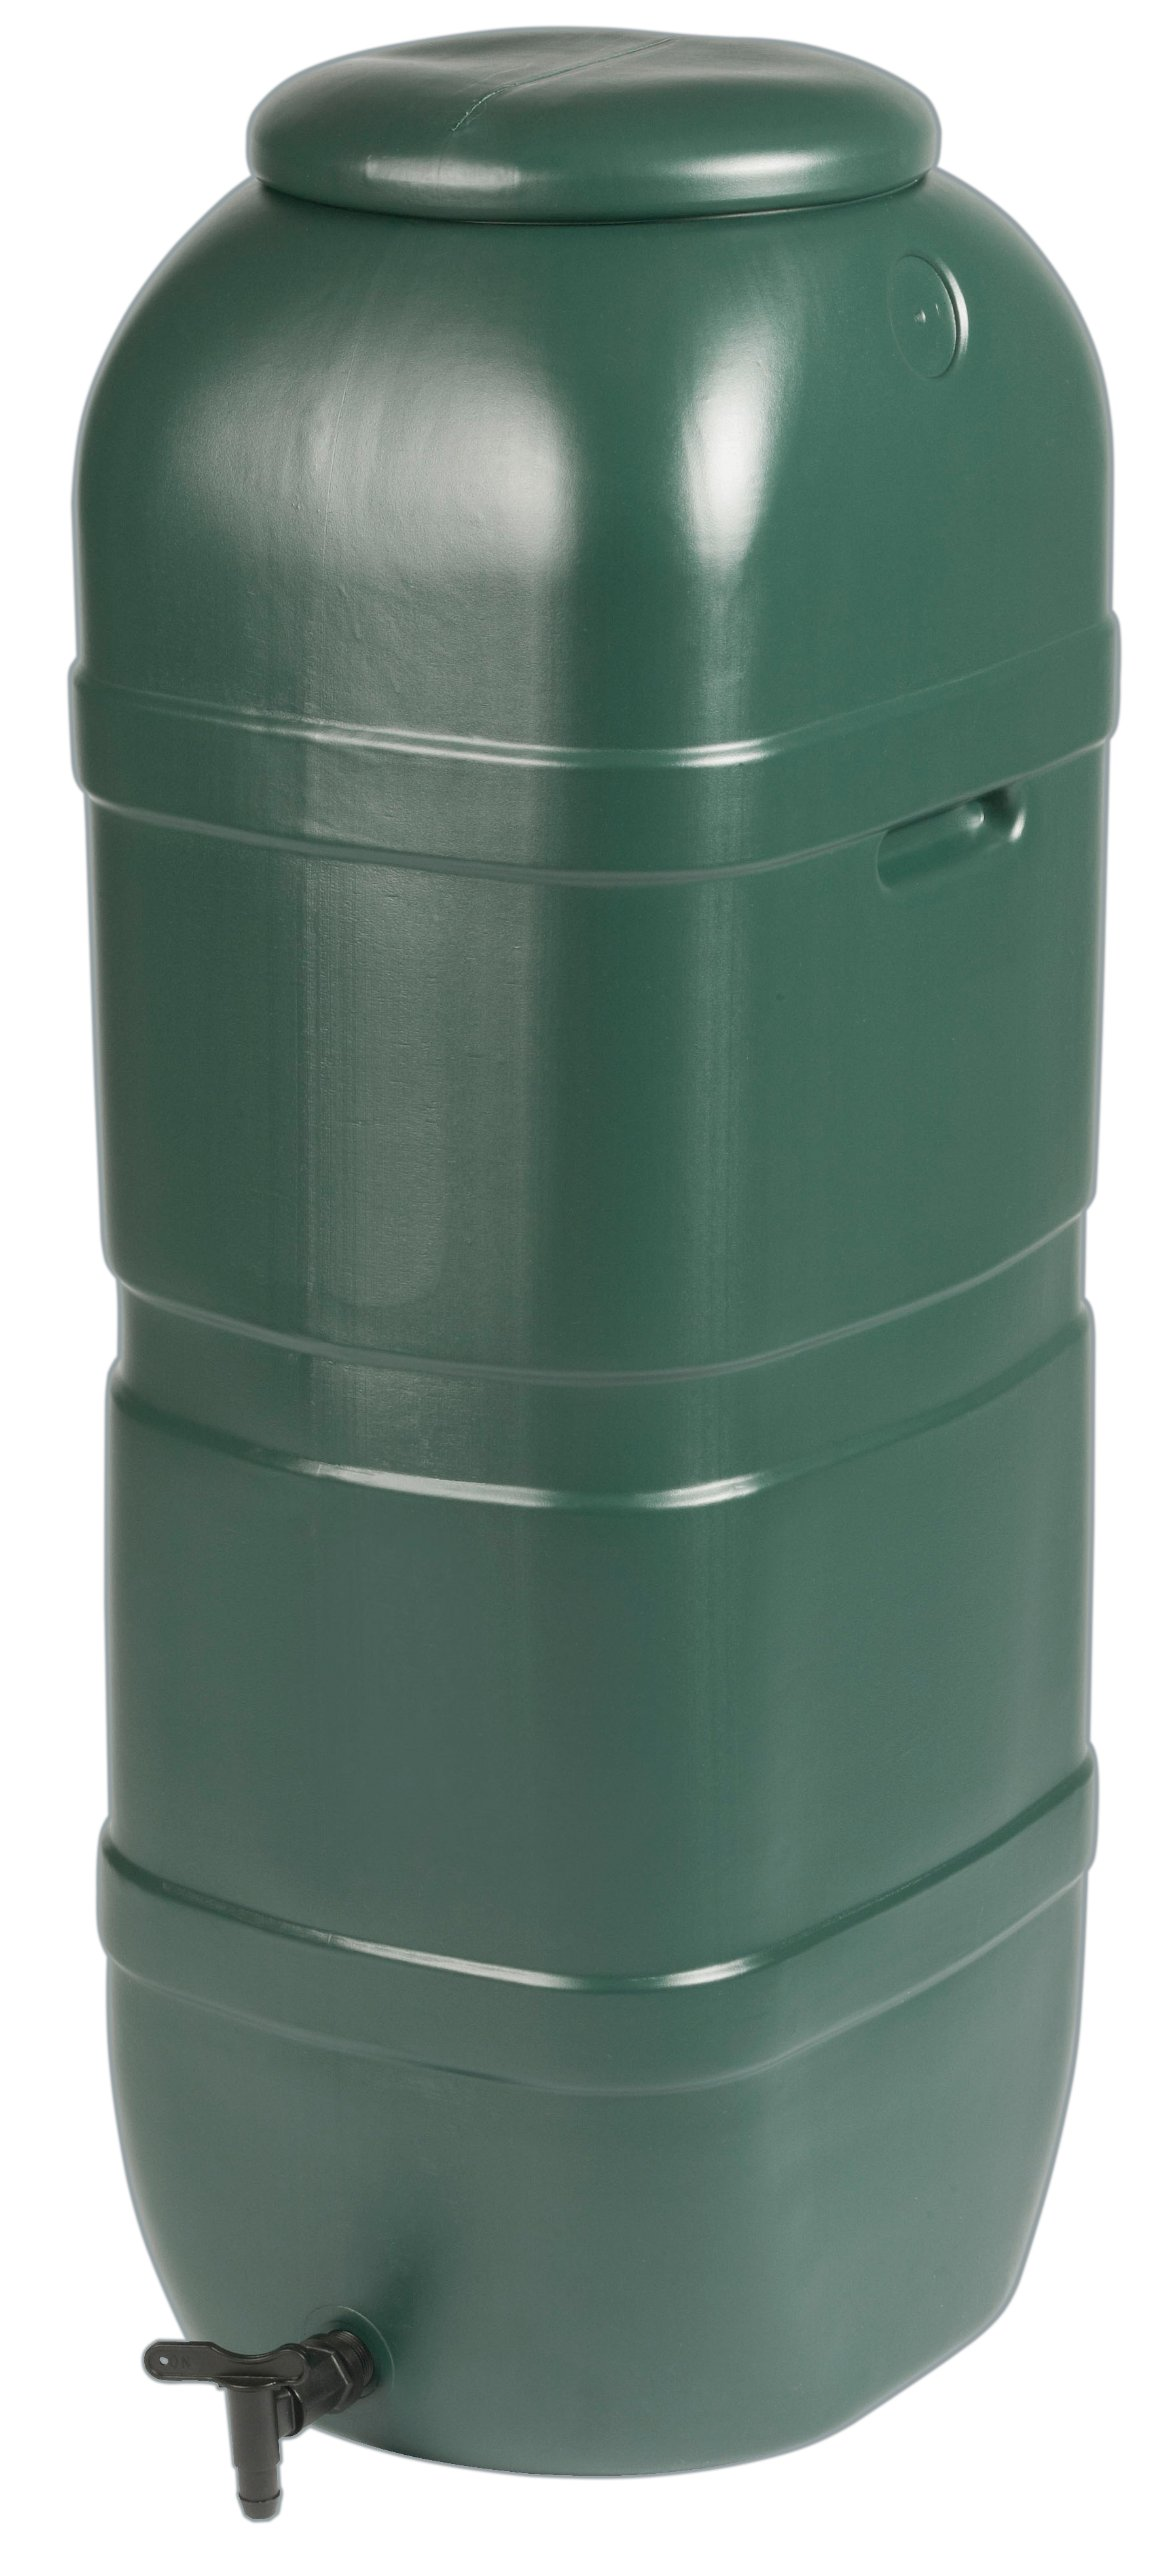 Ward GN334 100L Slimline Water Butt including Tap and Lockable Lid